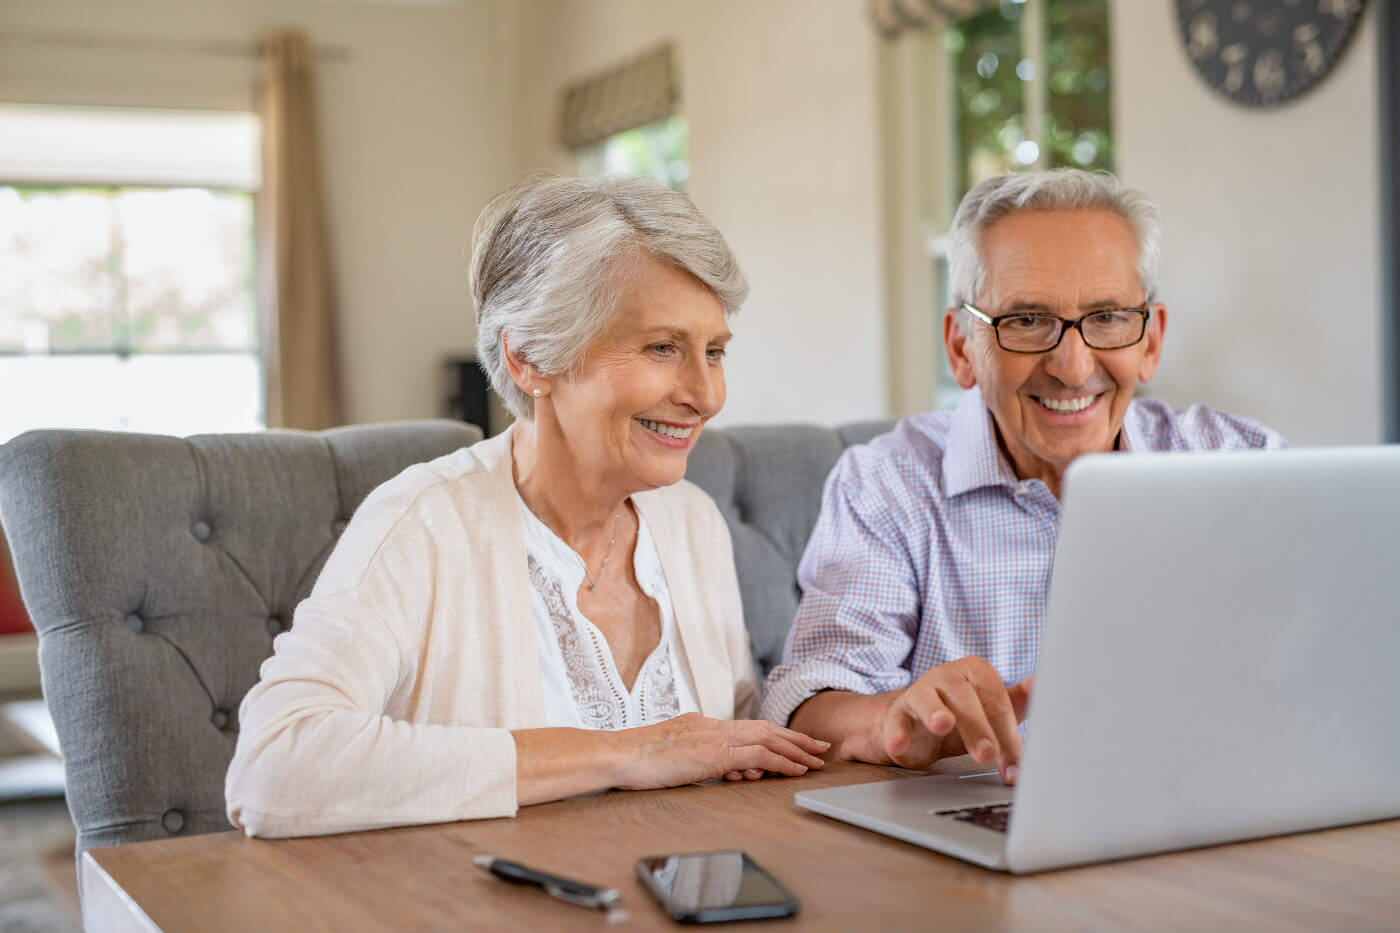 Best Laptop For Elderly Beginner Reviews 2020